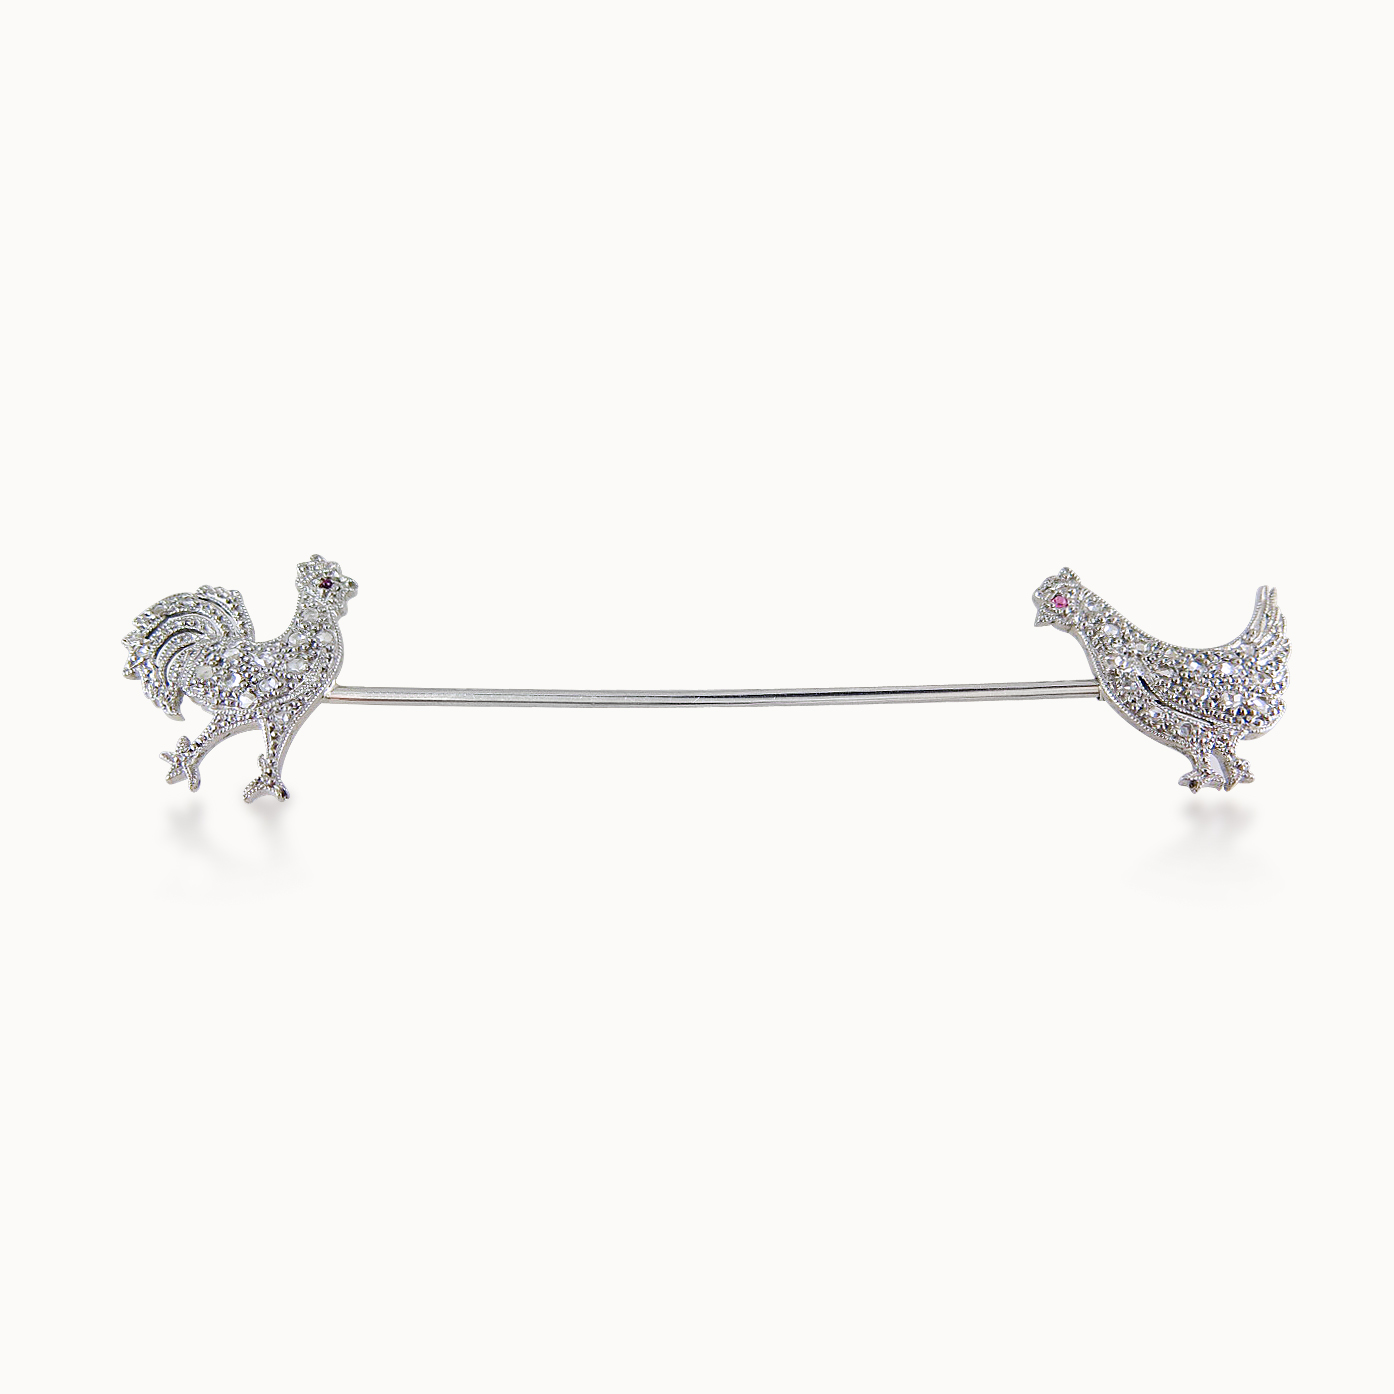 DIAMOND JABOT PIN